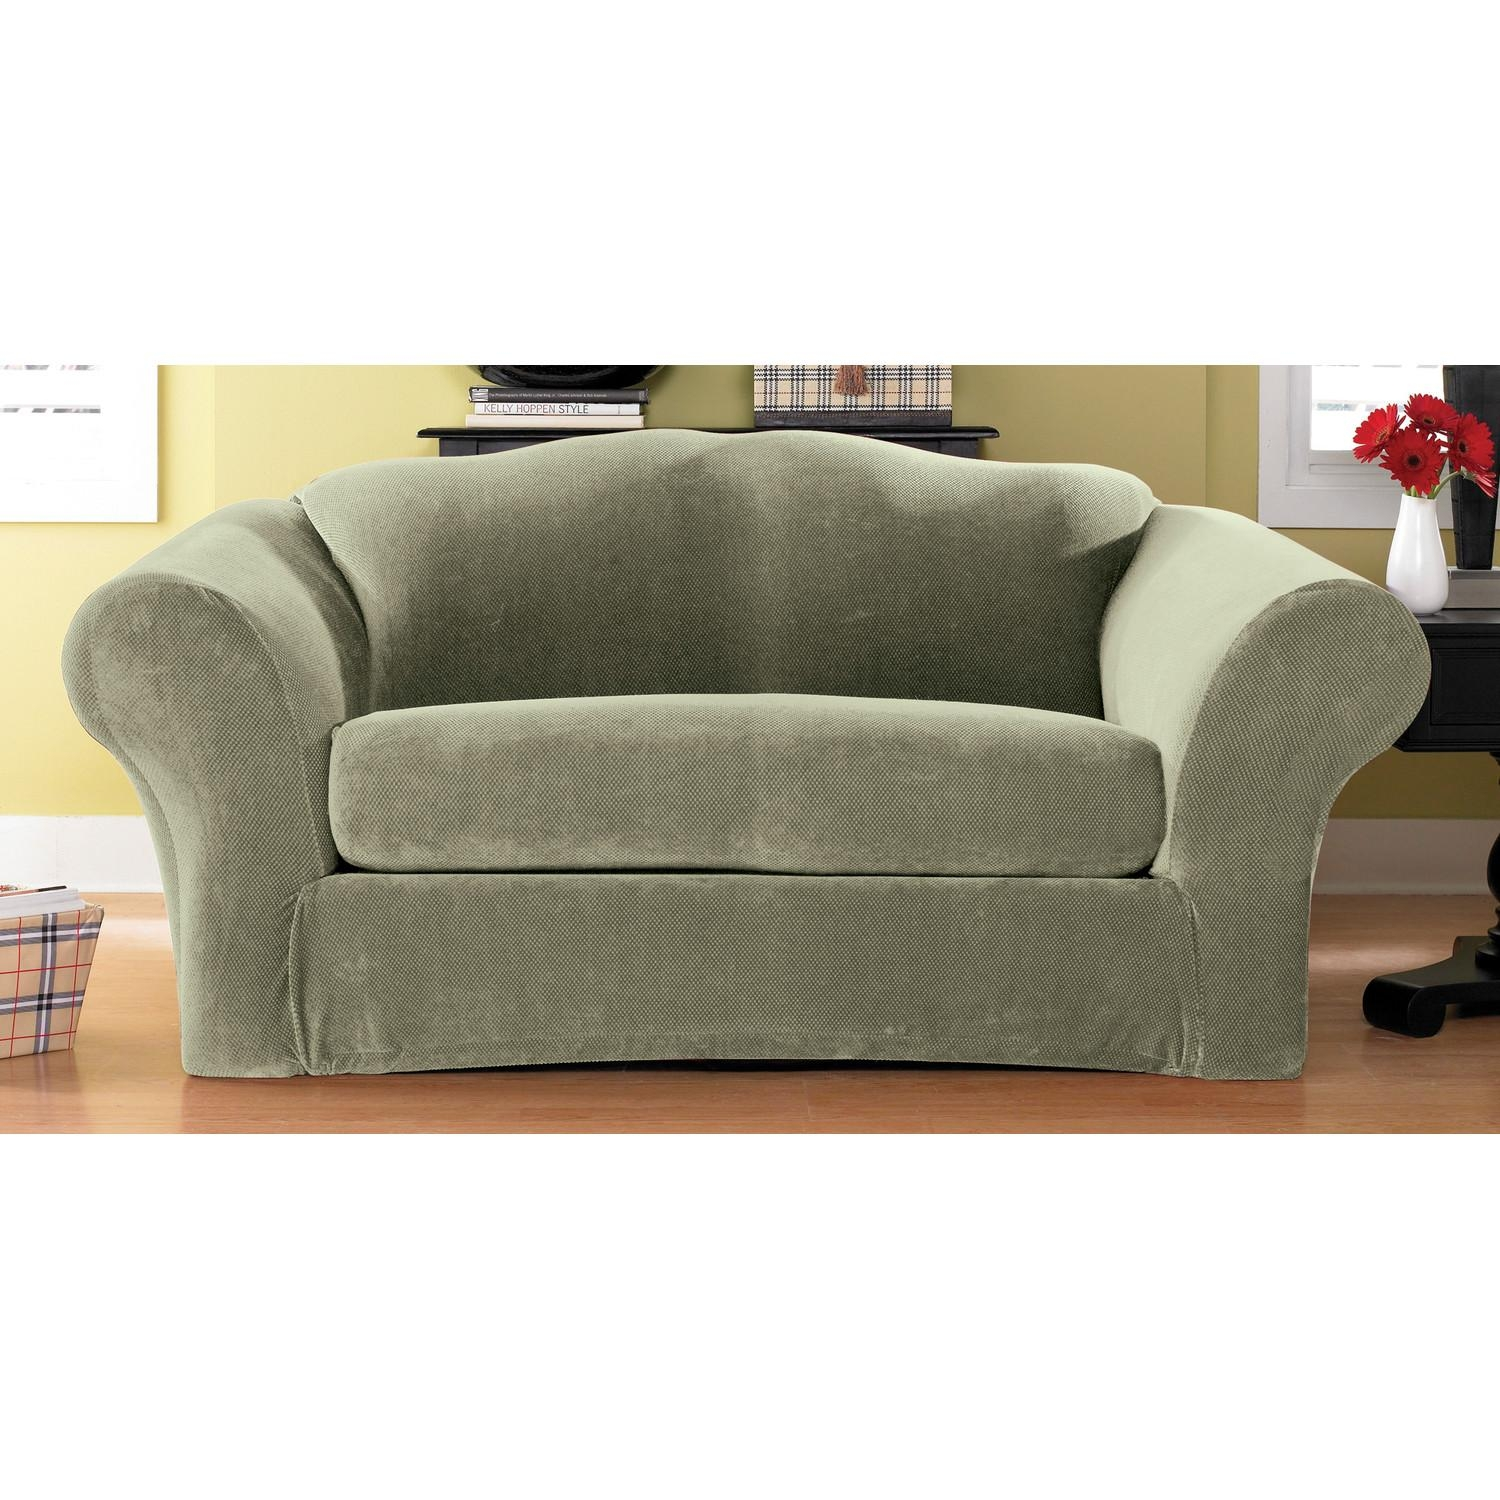 Decorating: Cozy Slipcovers For Sofas With Cushions Separate In Within Slipcover For Reclining Sofas (View 12 of 20)